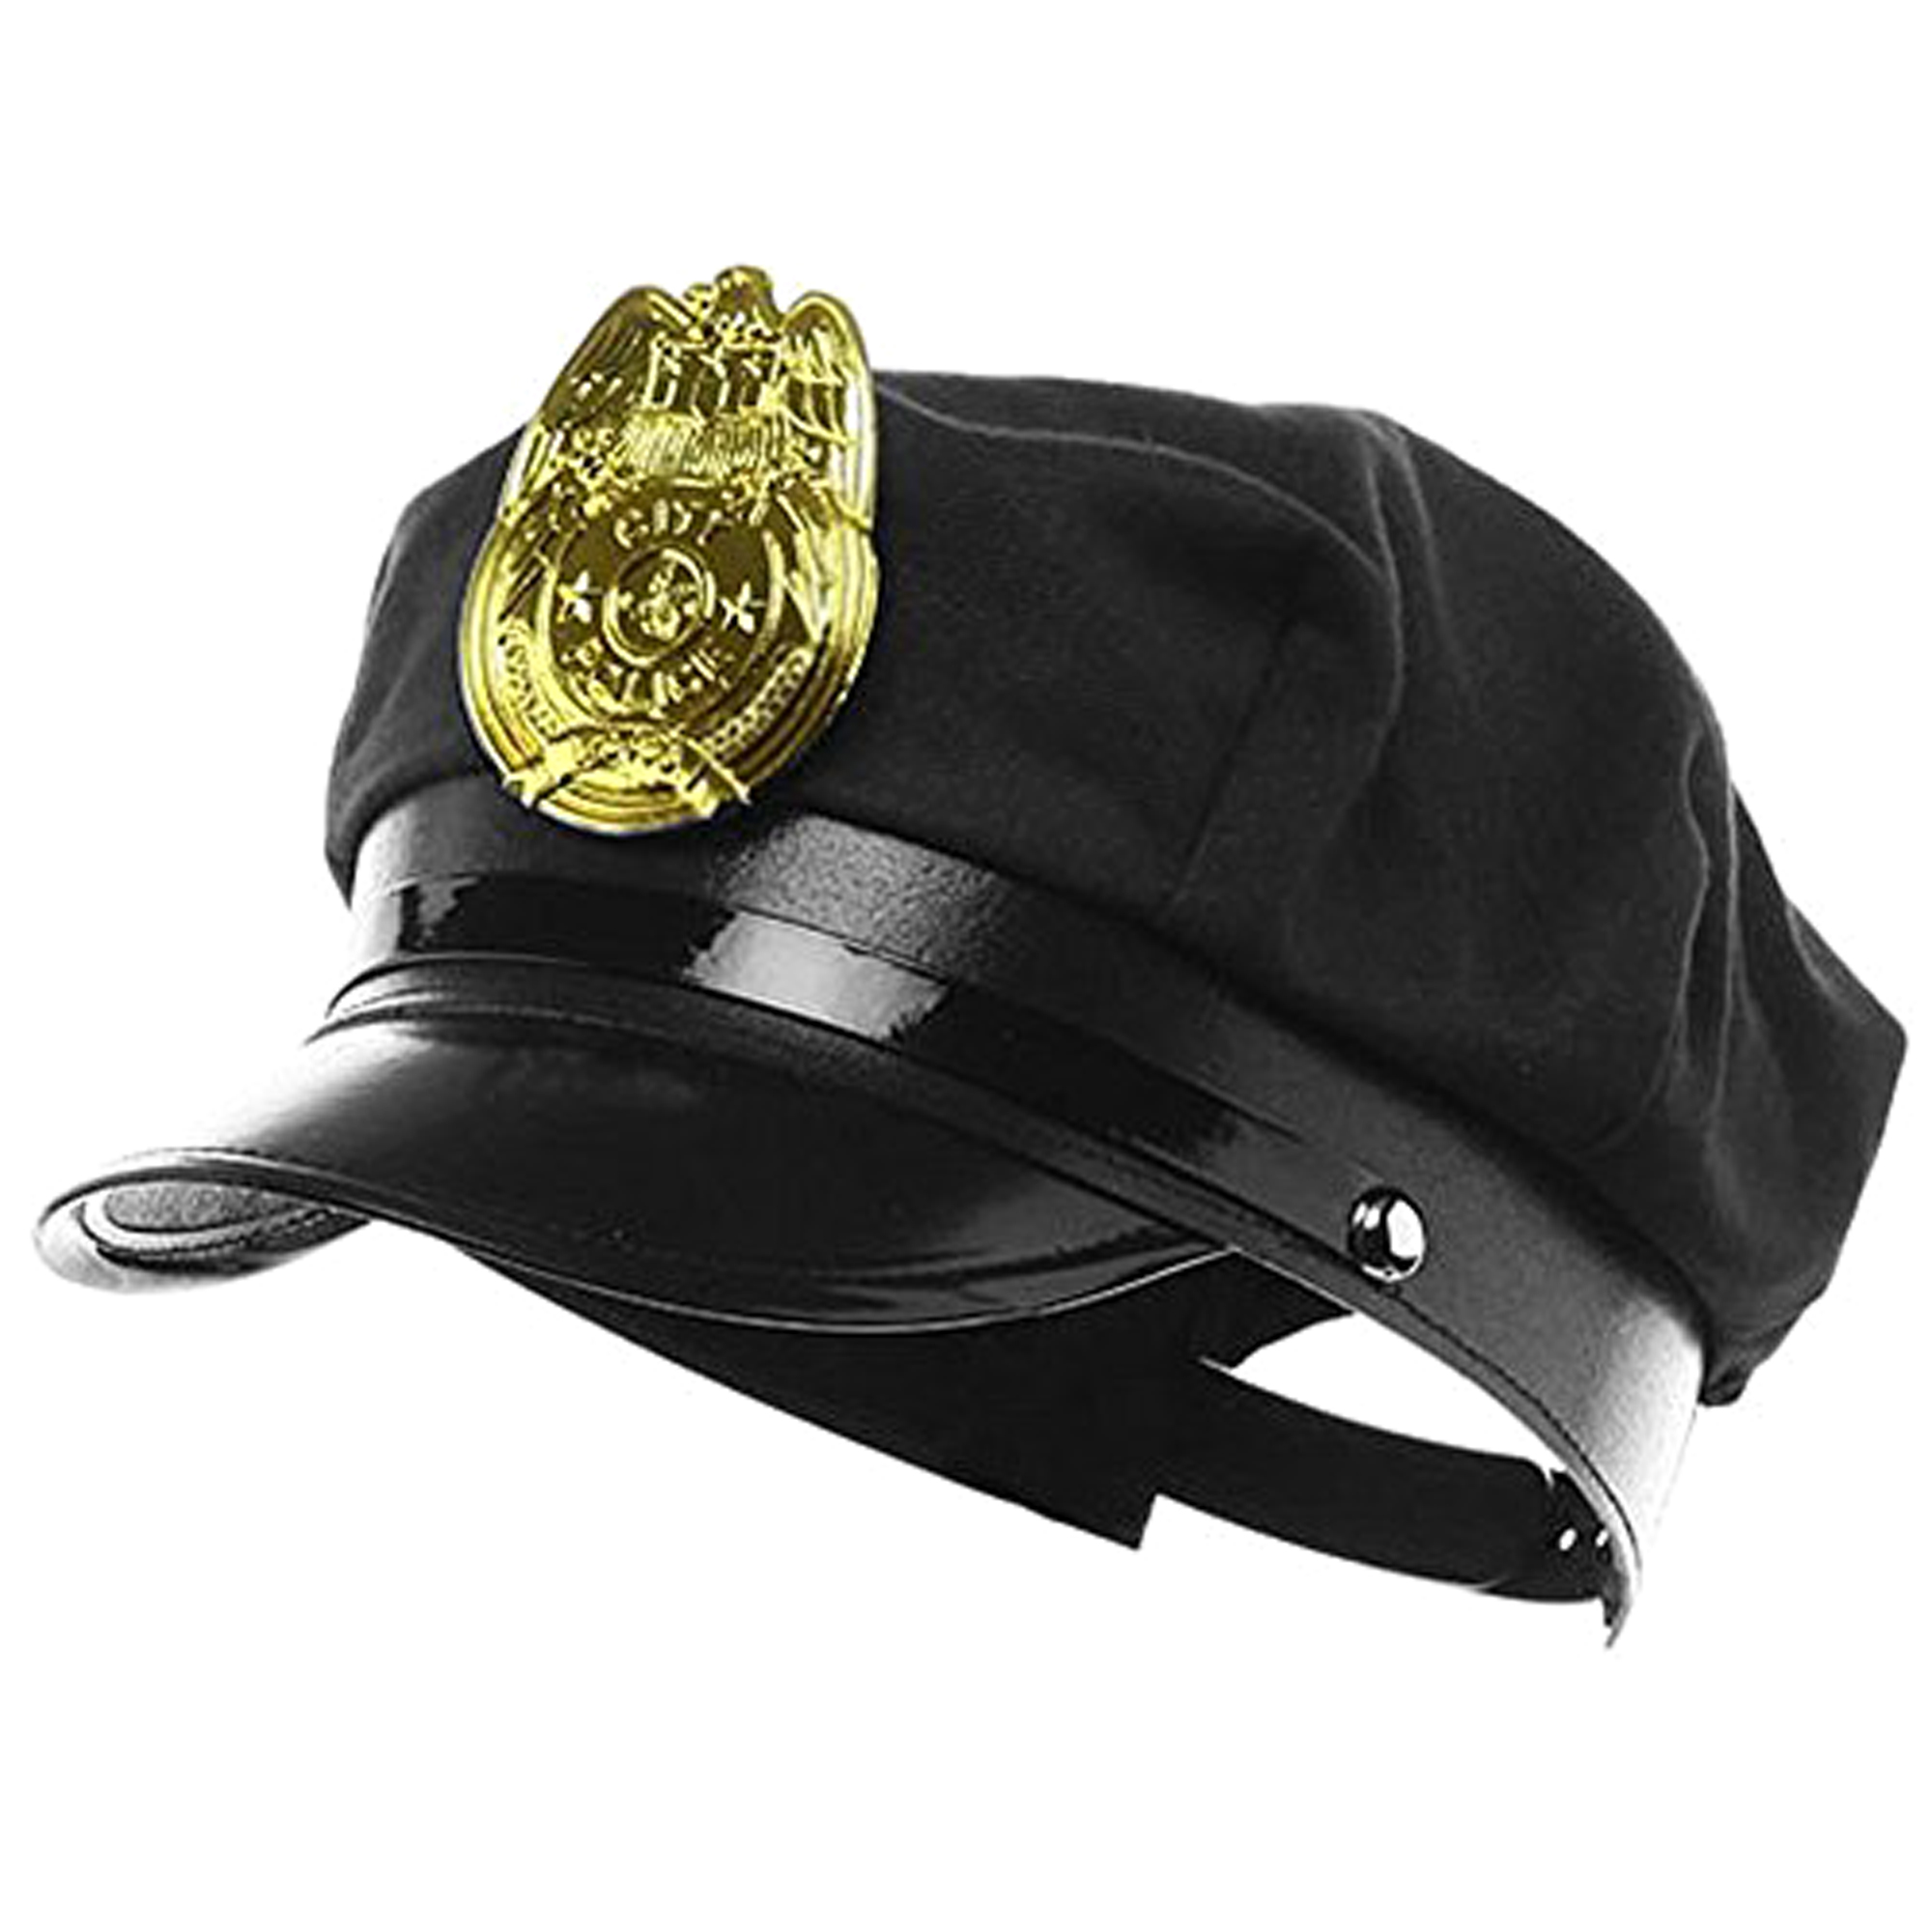 Novelty Costume Police Cop Navy Blue Hat with Plastic Badge Halloween Accessory